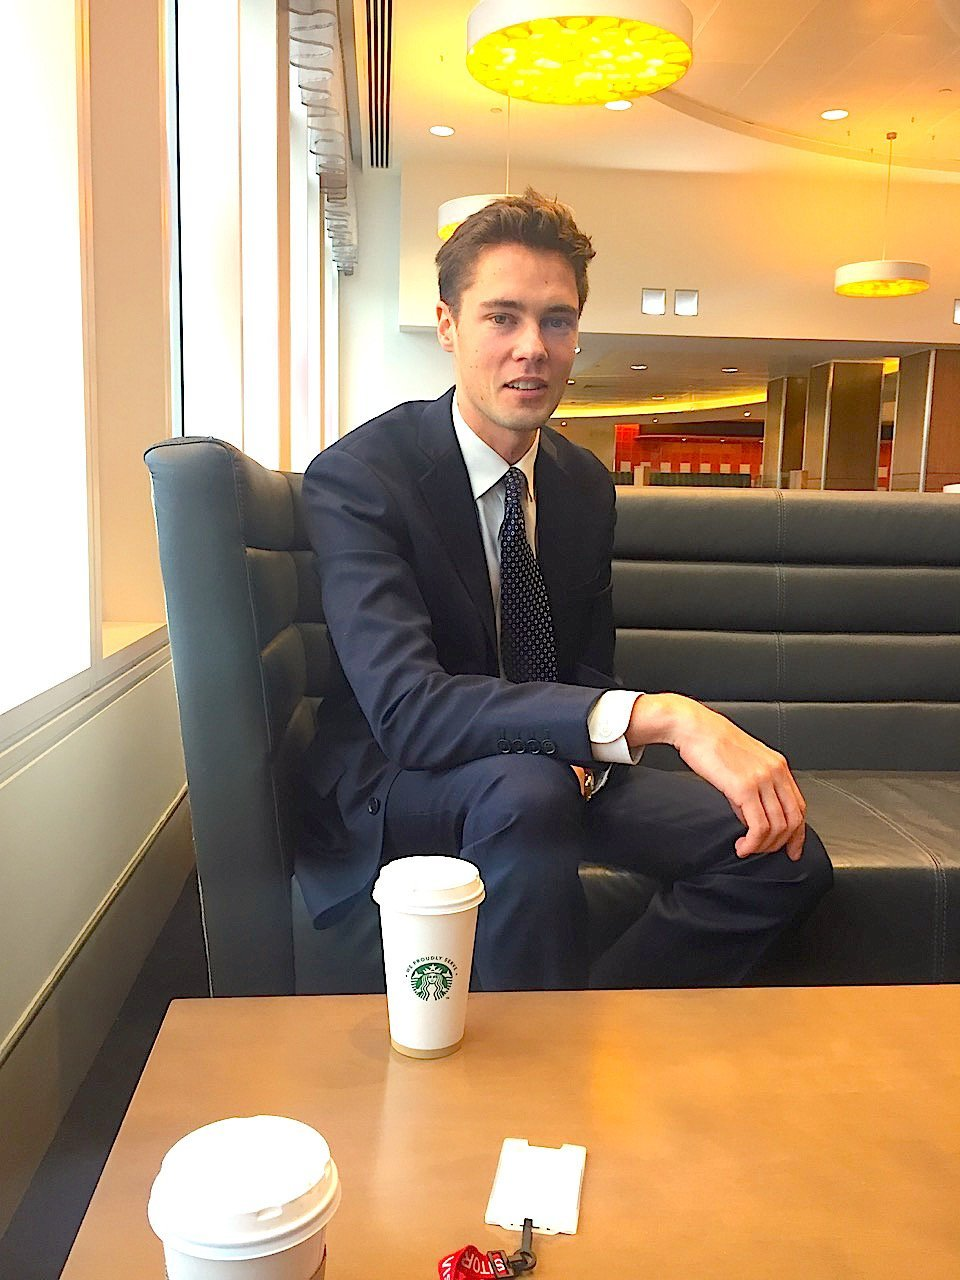 meet-henri-etchegoyen-28-pictured-here-in-the-credit-suisse-office-cafe-he-joined-the-bank-as-an-intern-working-his-way-up-to-analyst-and-finally-relationship-manager-in-the-private-bank-etchegoyen-went-through-an-18-month-training-programm